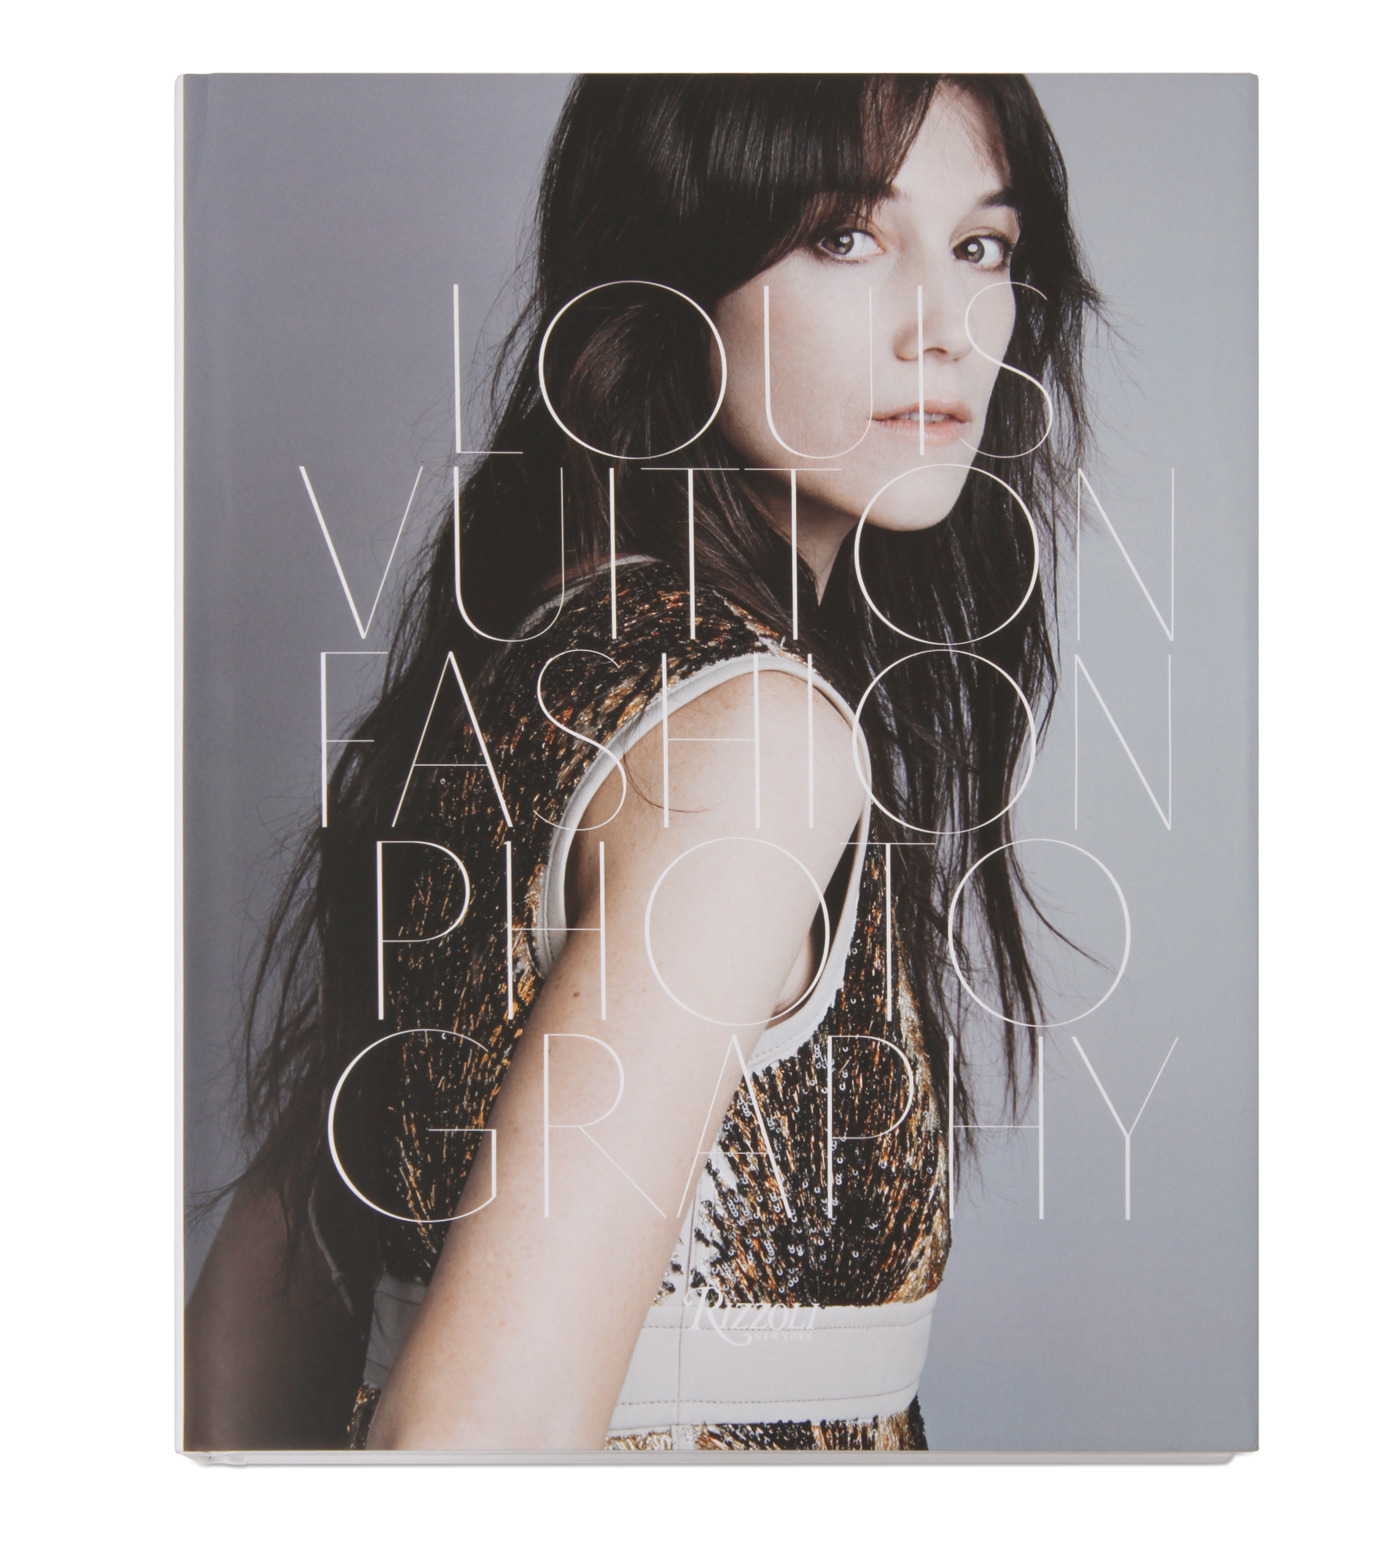 ArtBook(アートブック)のLouis Vuitton Fashion Photography.-GRAY(インテリア/OTHER-GOODS/interior/OTHER-GOODS)-8478-4331-2-11 拡大詳細画像1